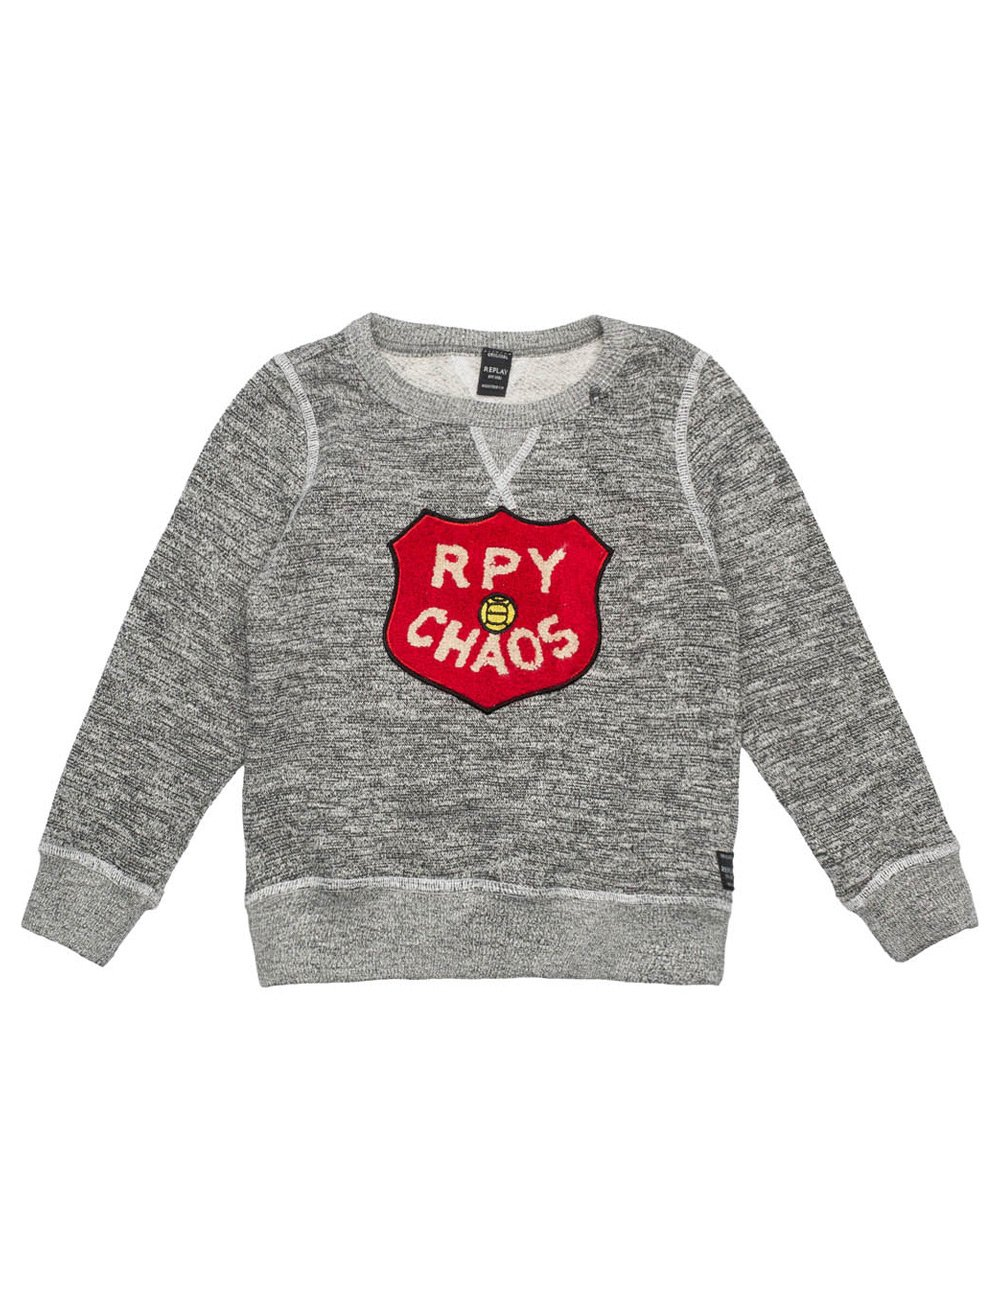 Replay Boys Grey Sweater With Patch in Size 10 Years Grey by Replay